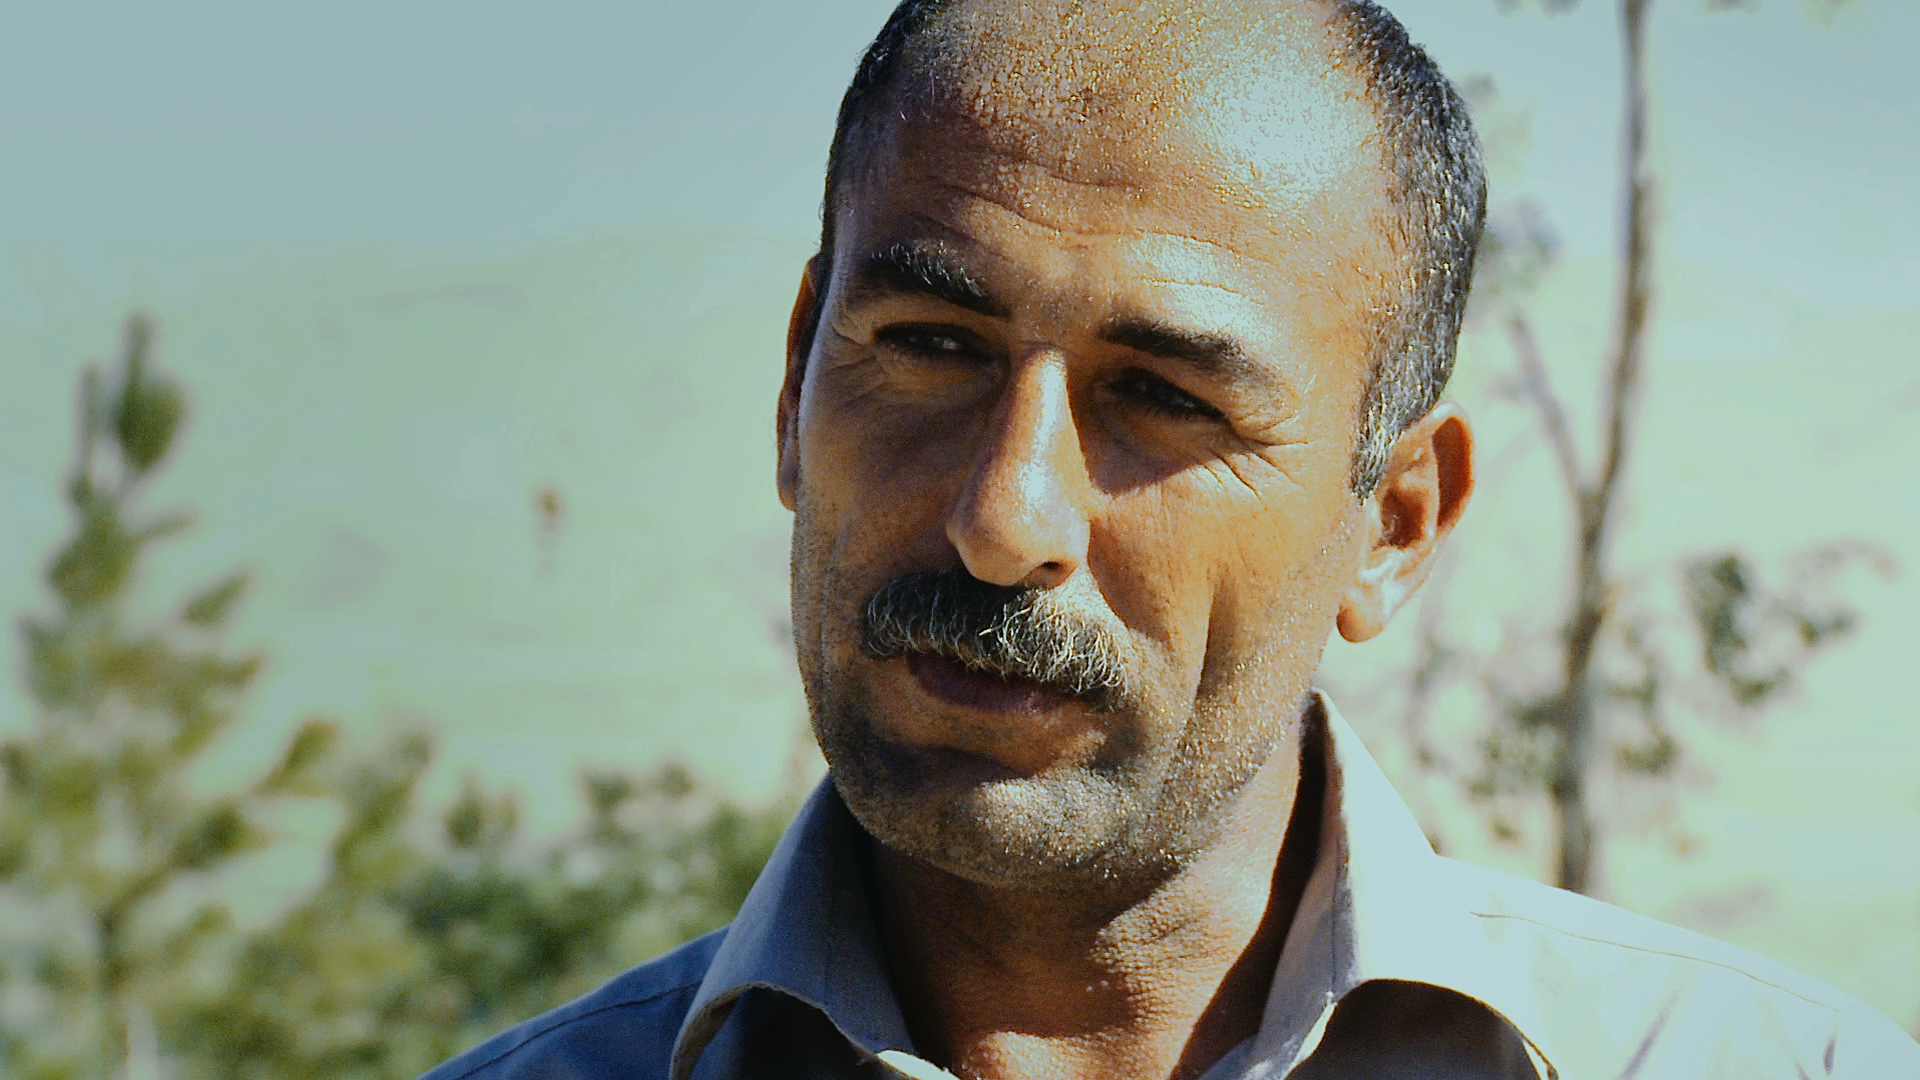 "After a chemical attack in May 1988, MUSTAFA KHADER ISMAEL fled with other villagers from Goptapa. Fearing Mustafa's chemical burns would betray who they were, his companions abandoned him in a field. He experienced extreme pain and despair until a Kurdish collaborator with the Iraqi army (""jash"") unexpectedly helped him find refuge."